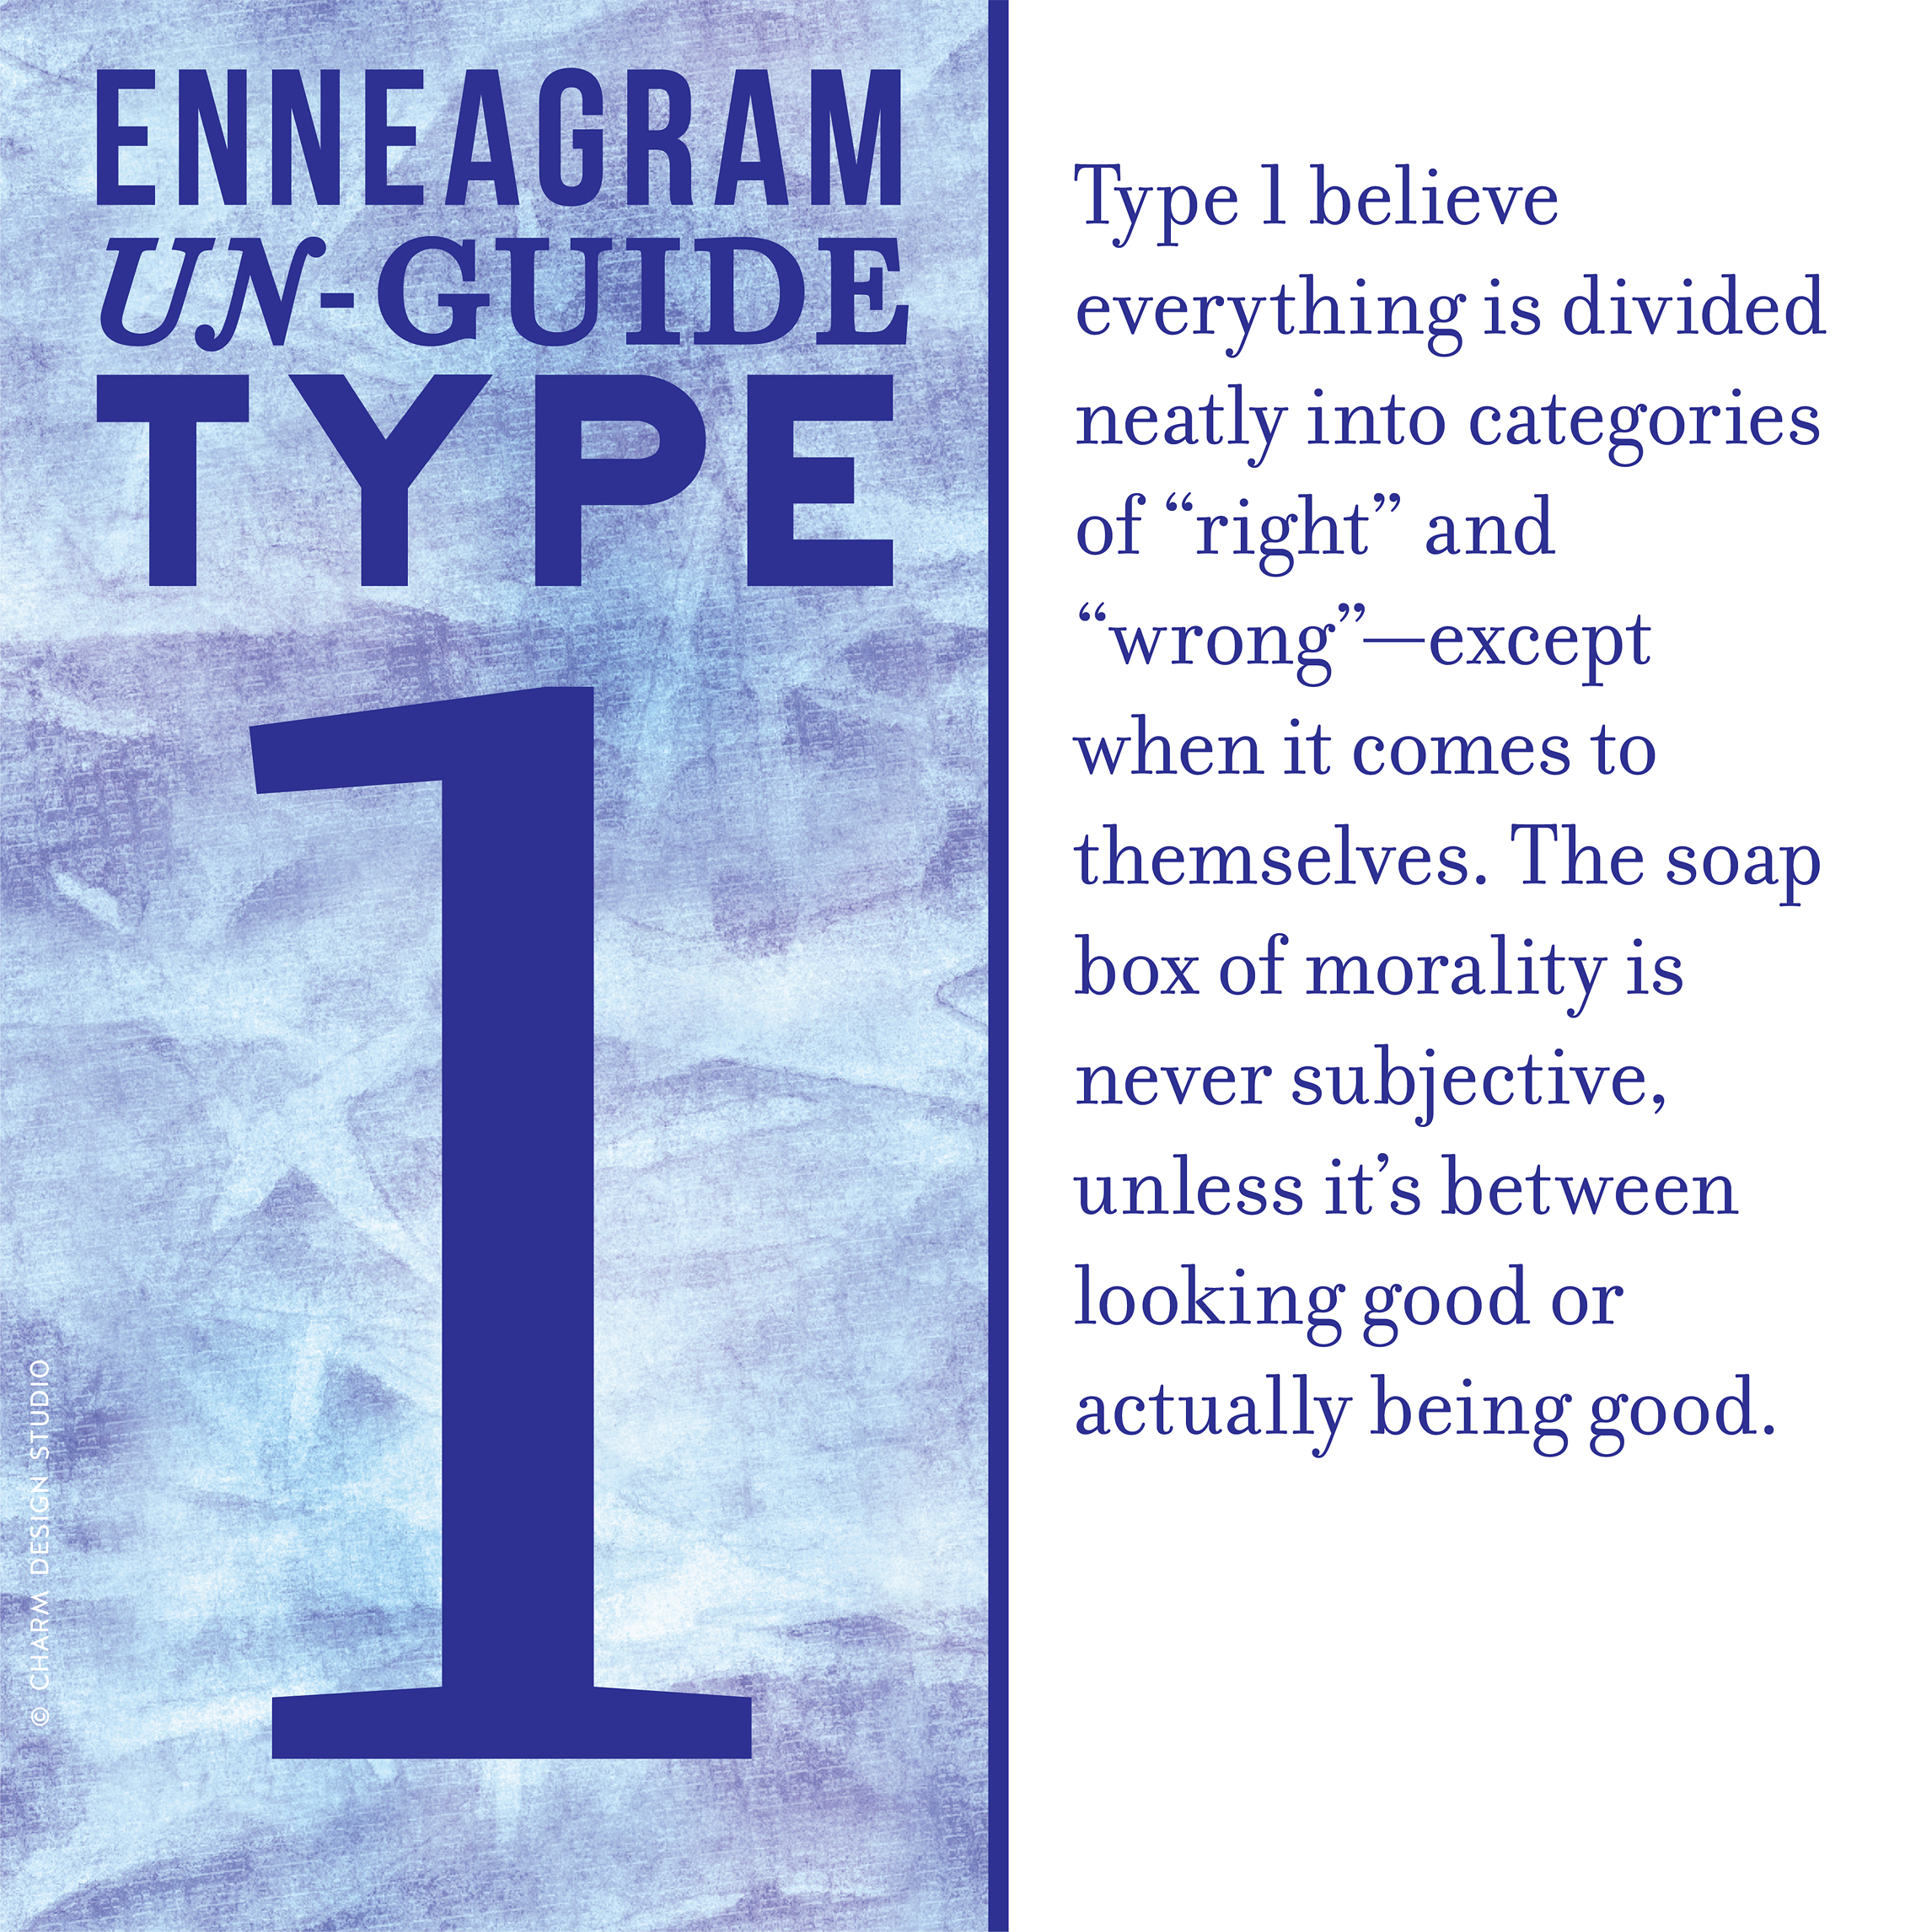 "Enneagram Un-Guide: Type 1 believe everything is divided neatly into categories of ""right"" and ""wrong""—except when it comes to themselves. The soap box of morality is never subjective, unless it's between looking good or actually being good. / Design and words © Charm Design Studio"